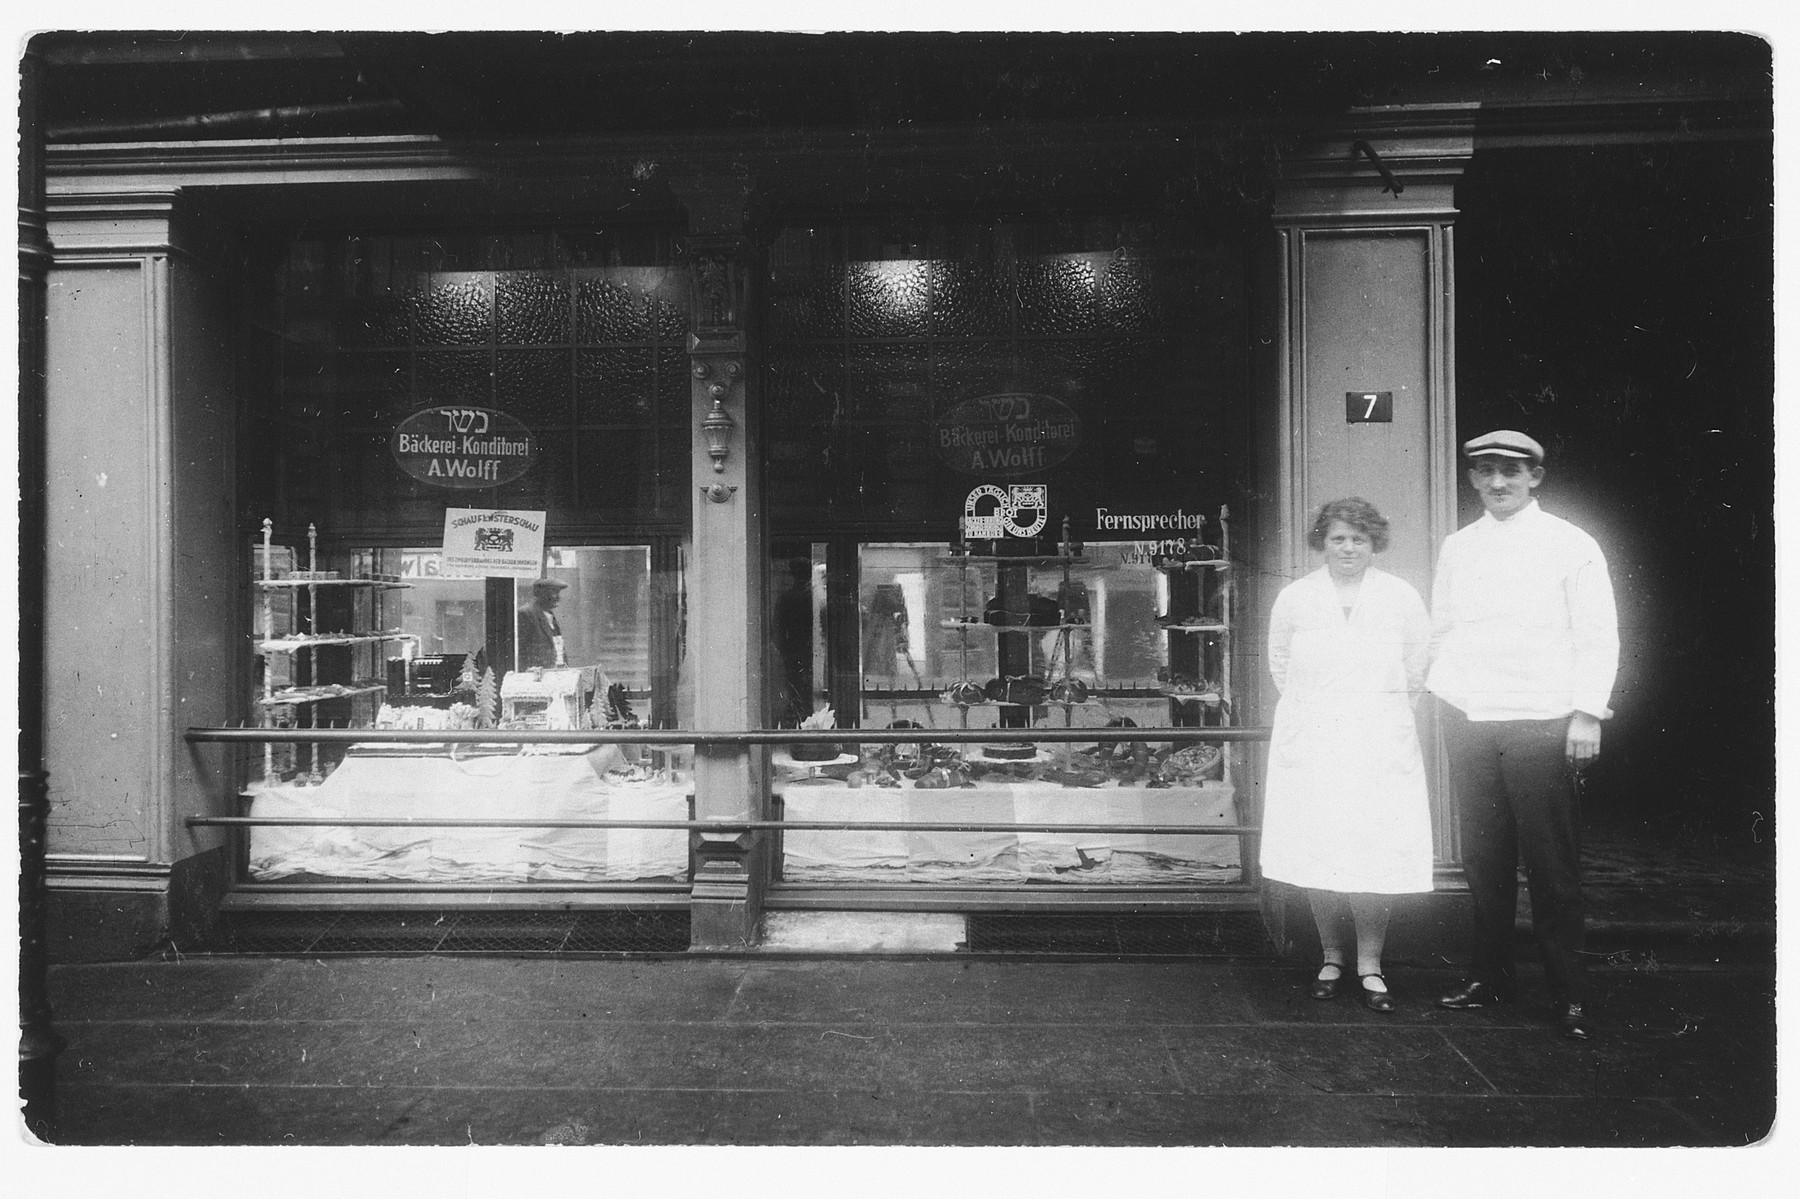 Proprietors of a kosher bakery stand in front of their store window.  Pictured are Angela Stiefel and her brother-in-law Adolf Wolf.